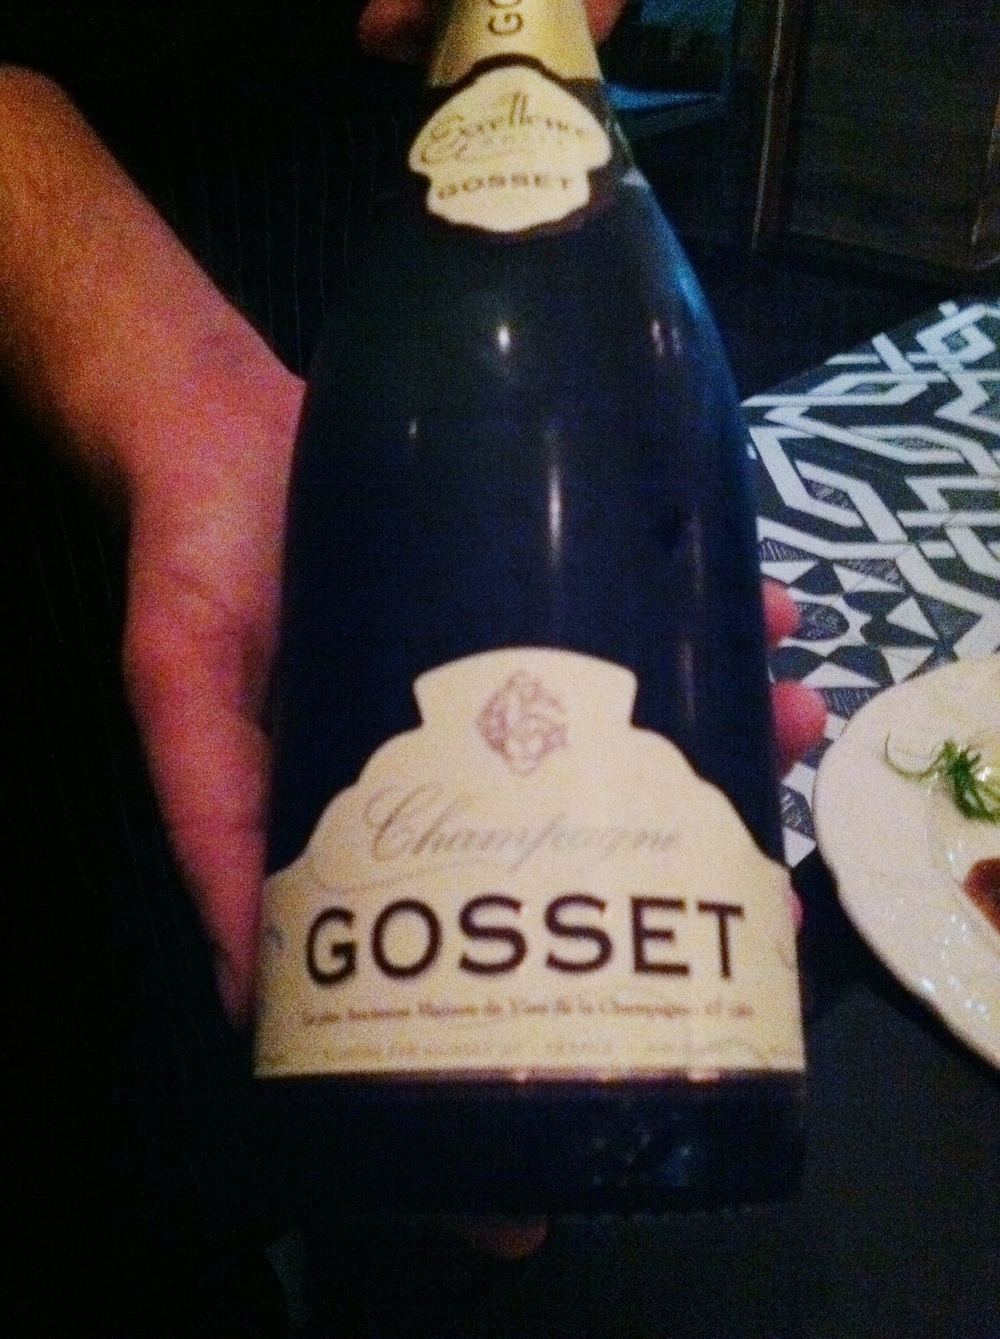 Gosset Champagne, photo by Shana Sokol of Shana Speaks WIne